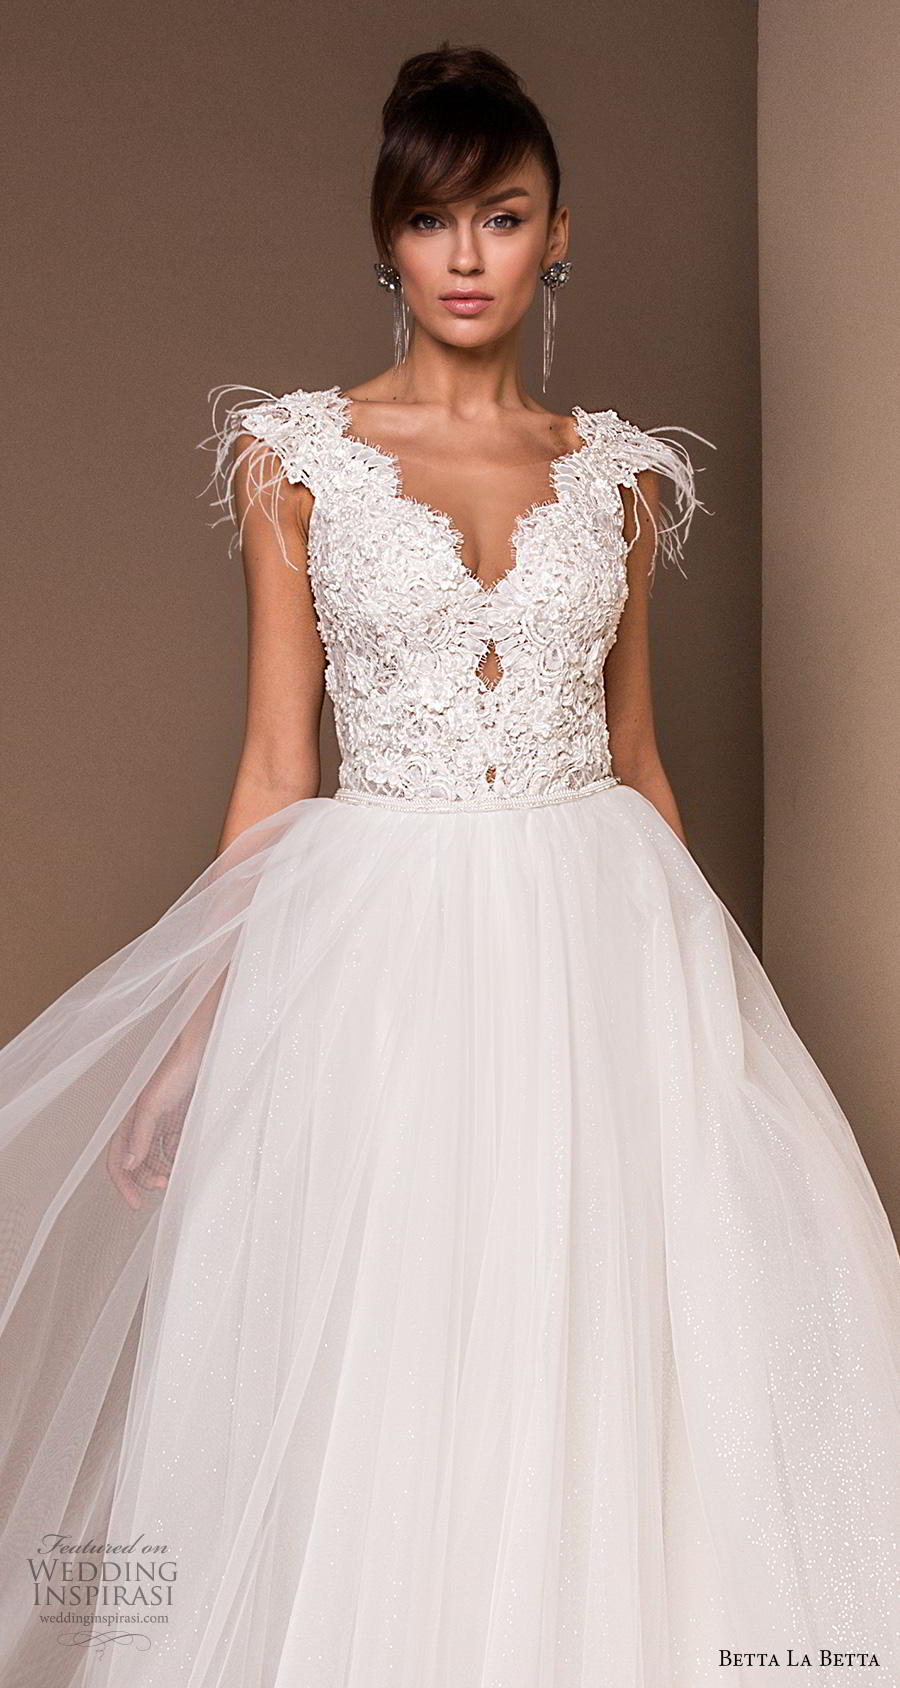 betta la betta 2020 bridal cap sleeves v neck heavily embellished bodice romantic ball gown a  line wedding dress v back chapel train (13) zv